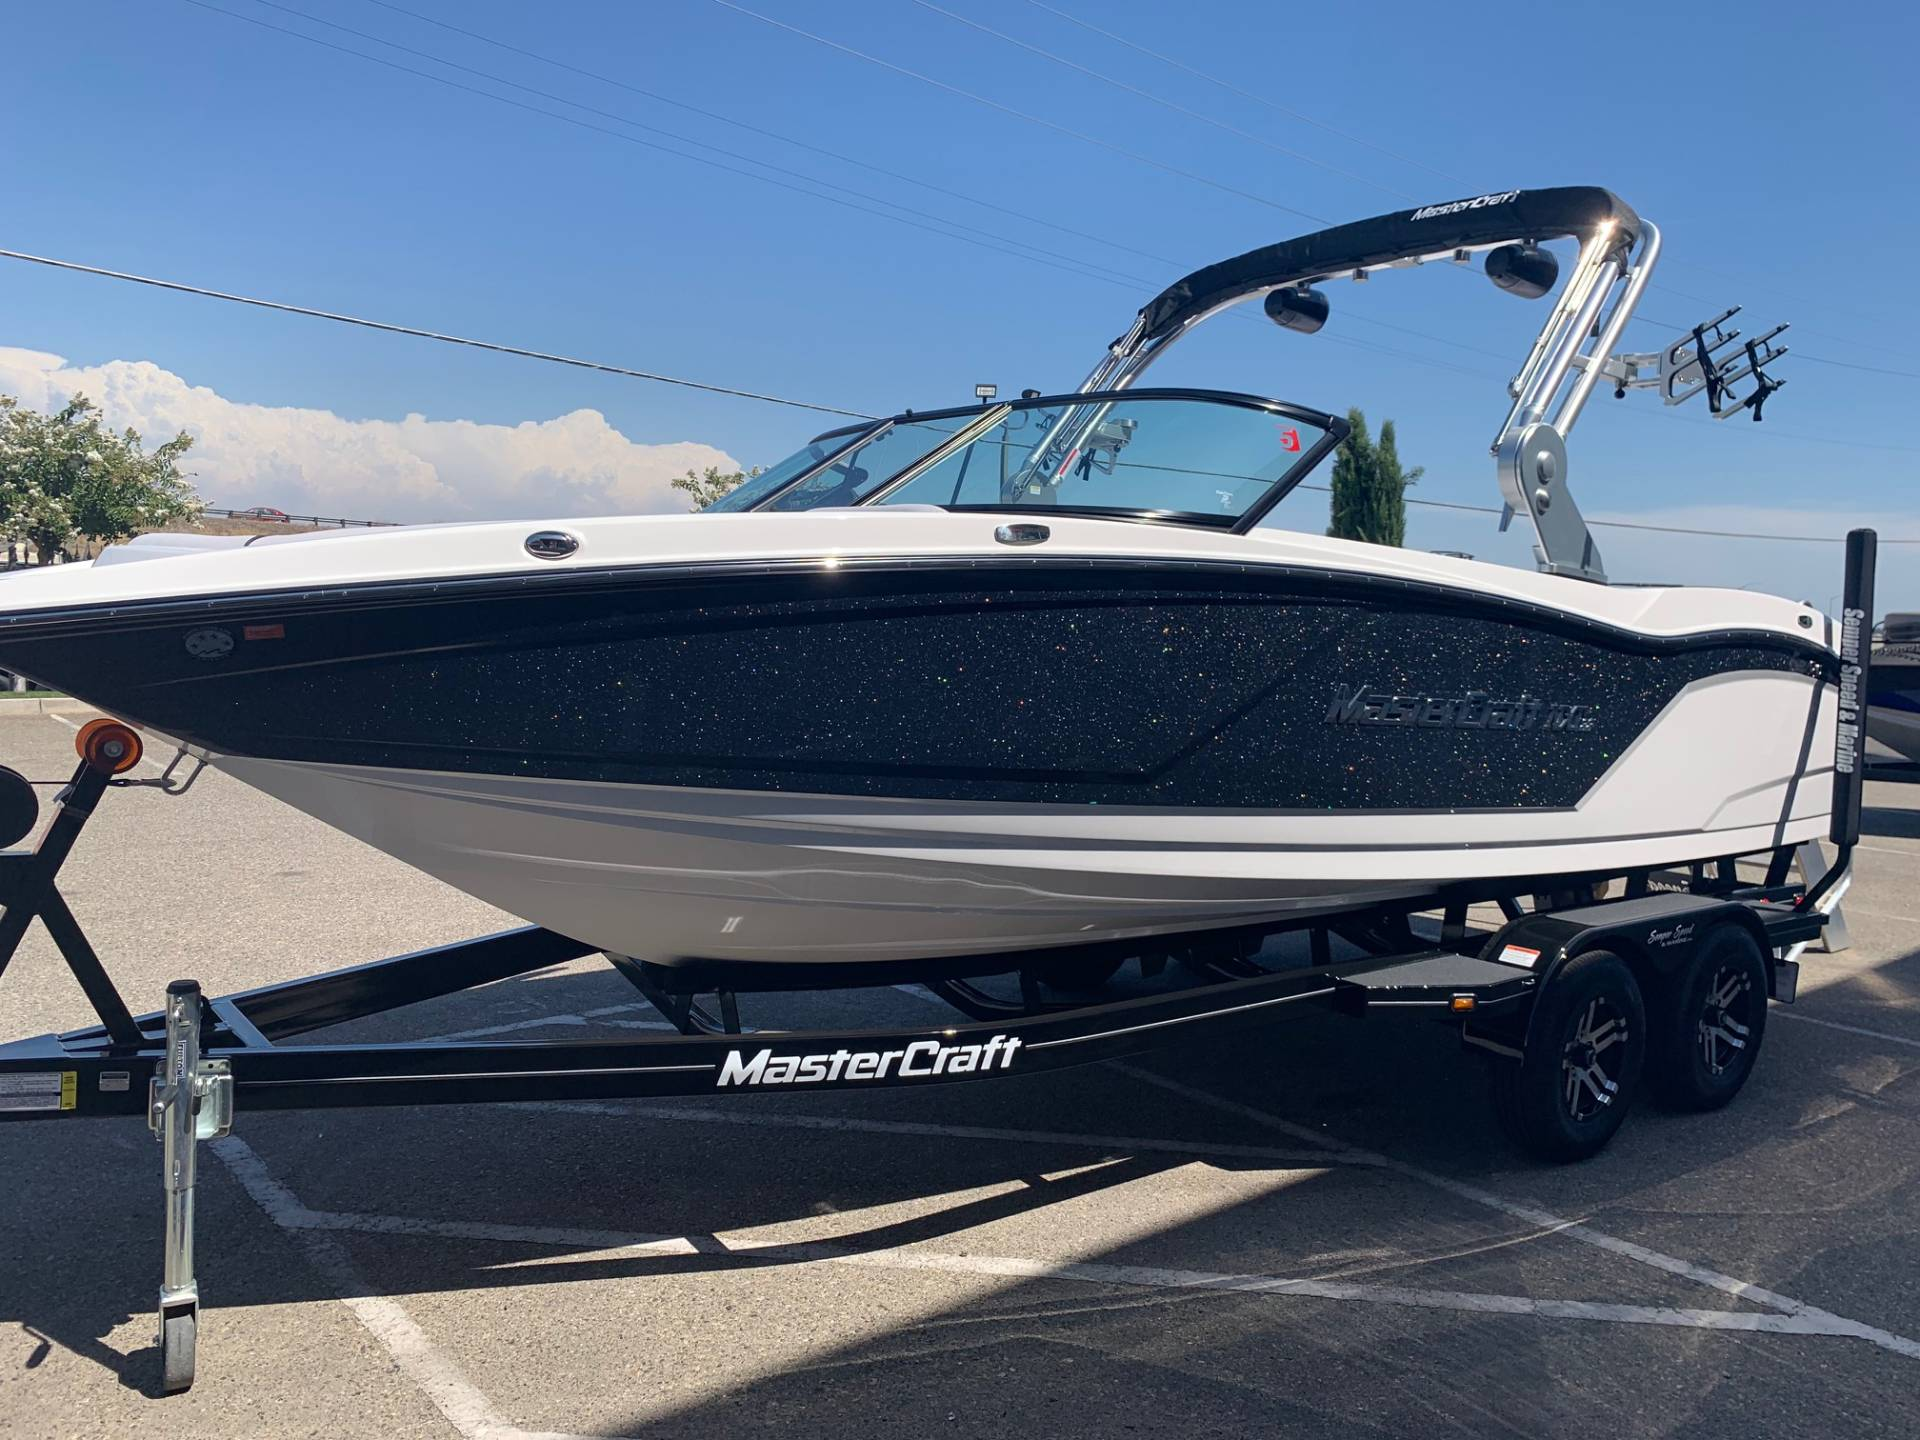 2019 Mastercraft NXT22 in Madera, California - Photo 11